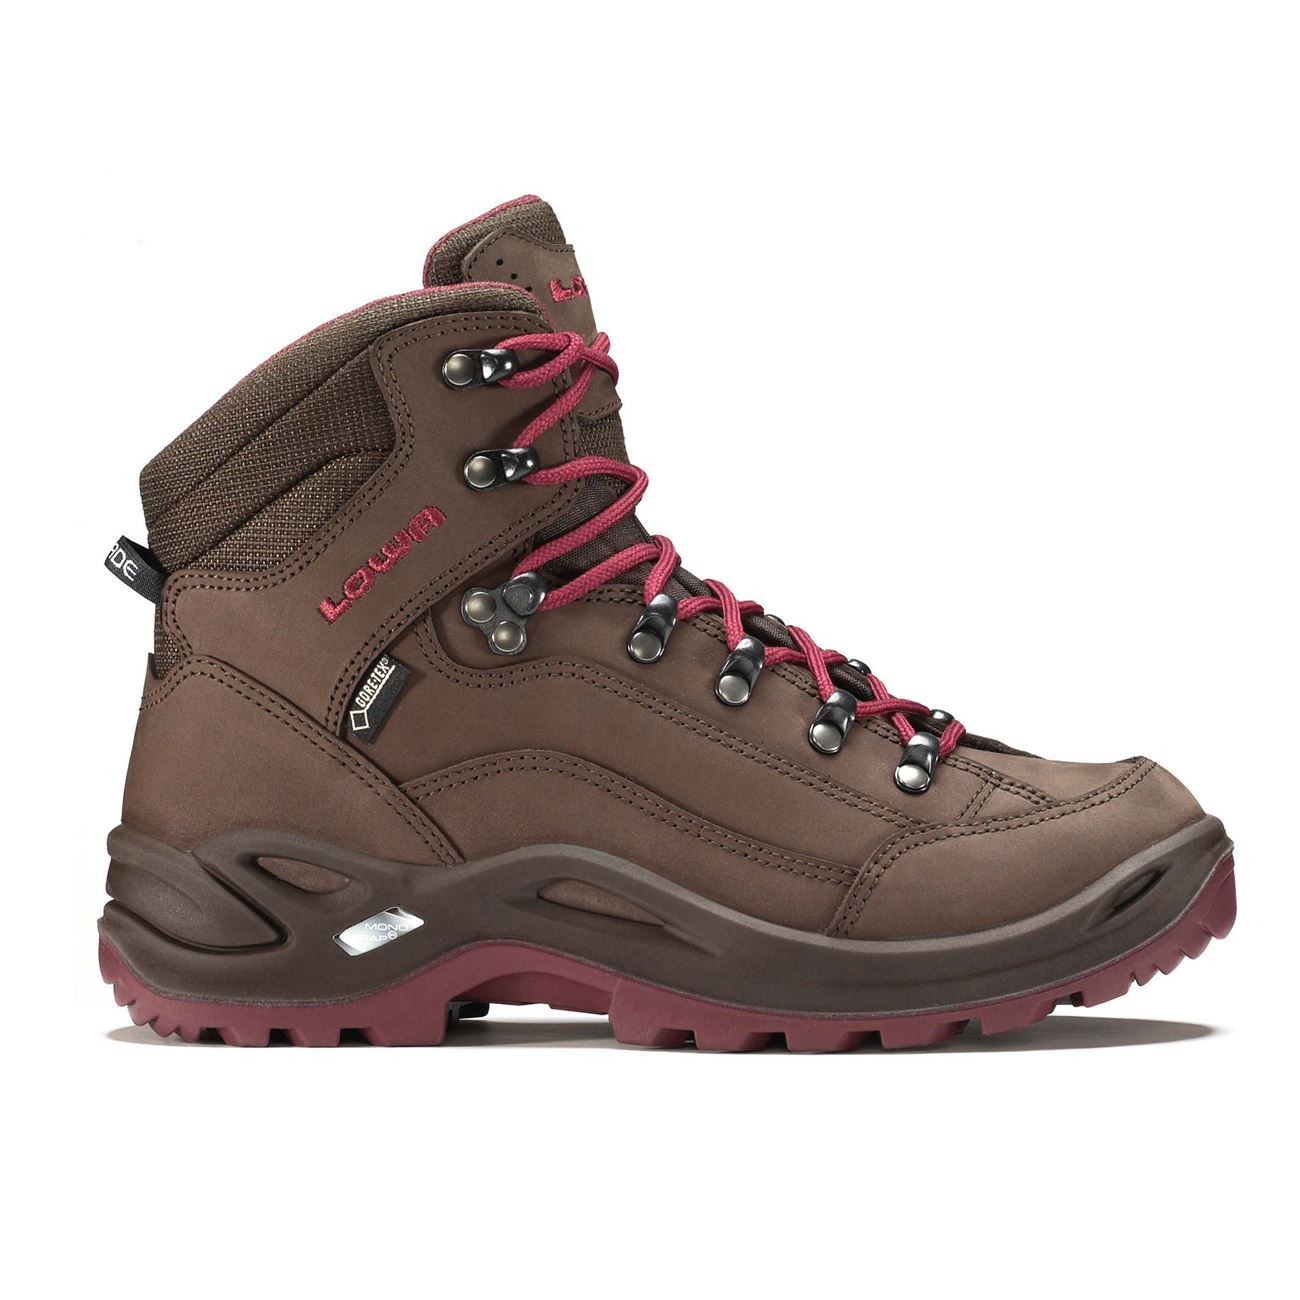 LOWA, Renegade GTX Mid, Women's, Espresso/Berry Hiking Boots LOWA Espresso/Berry 4UK